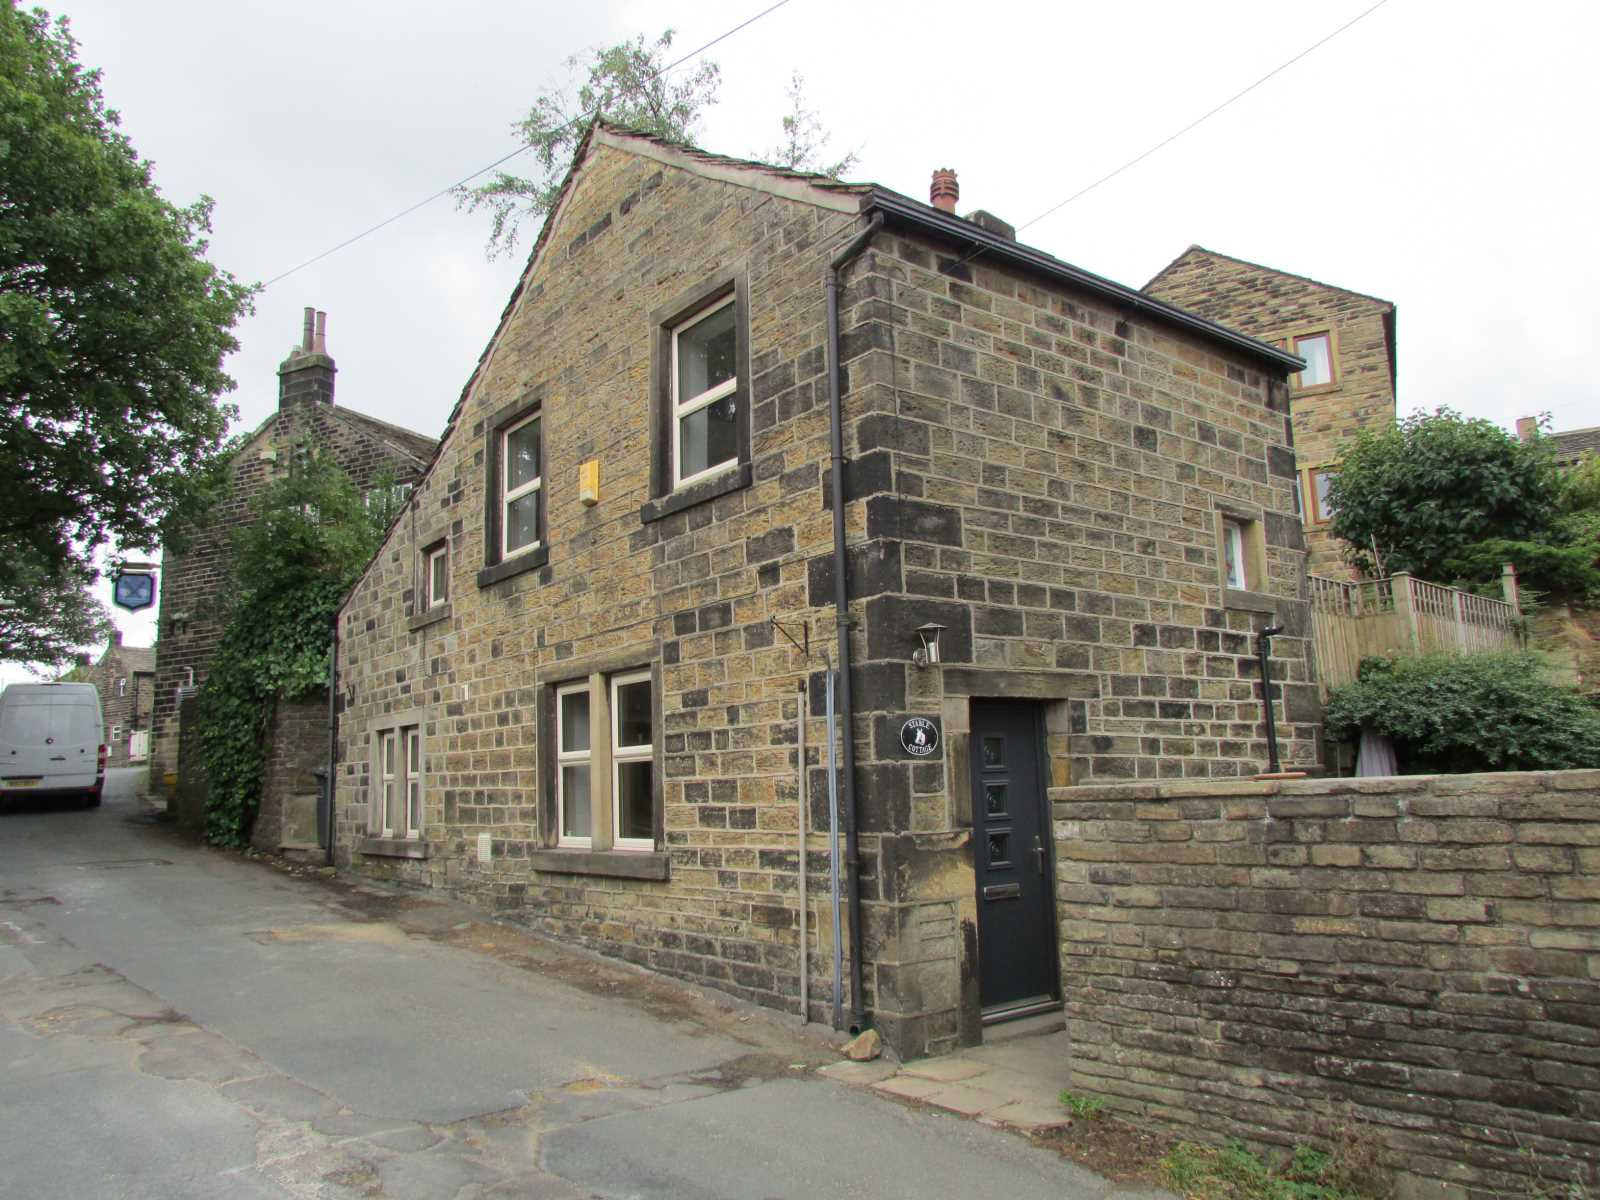 Stable Cottage, 37 Towngate, Hepworth, Holmfirth, HD9 1TE